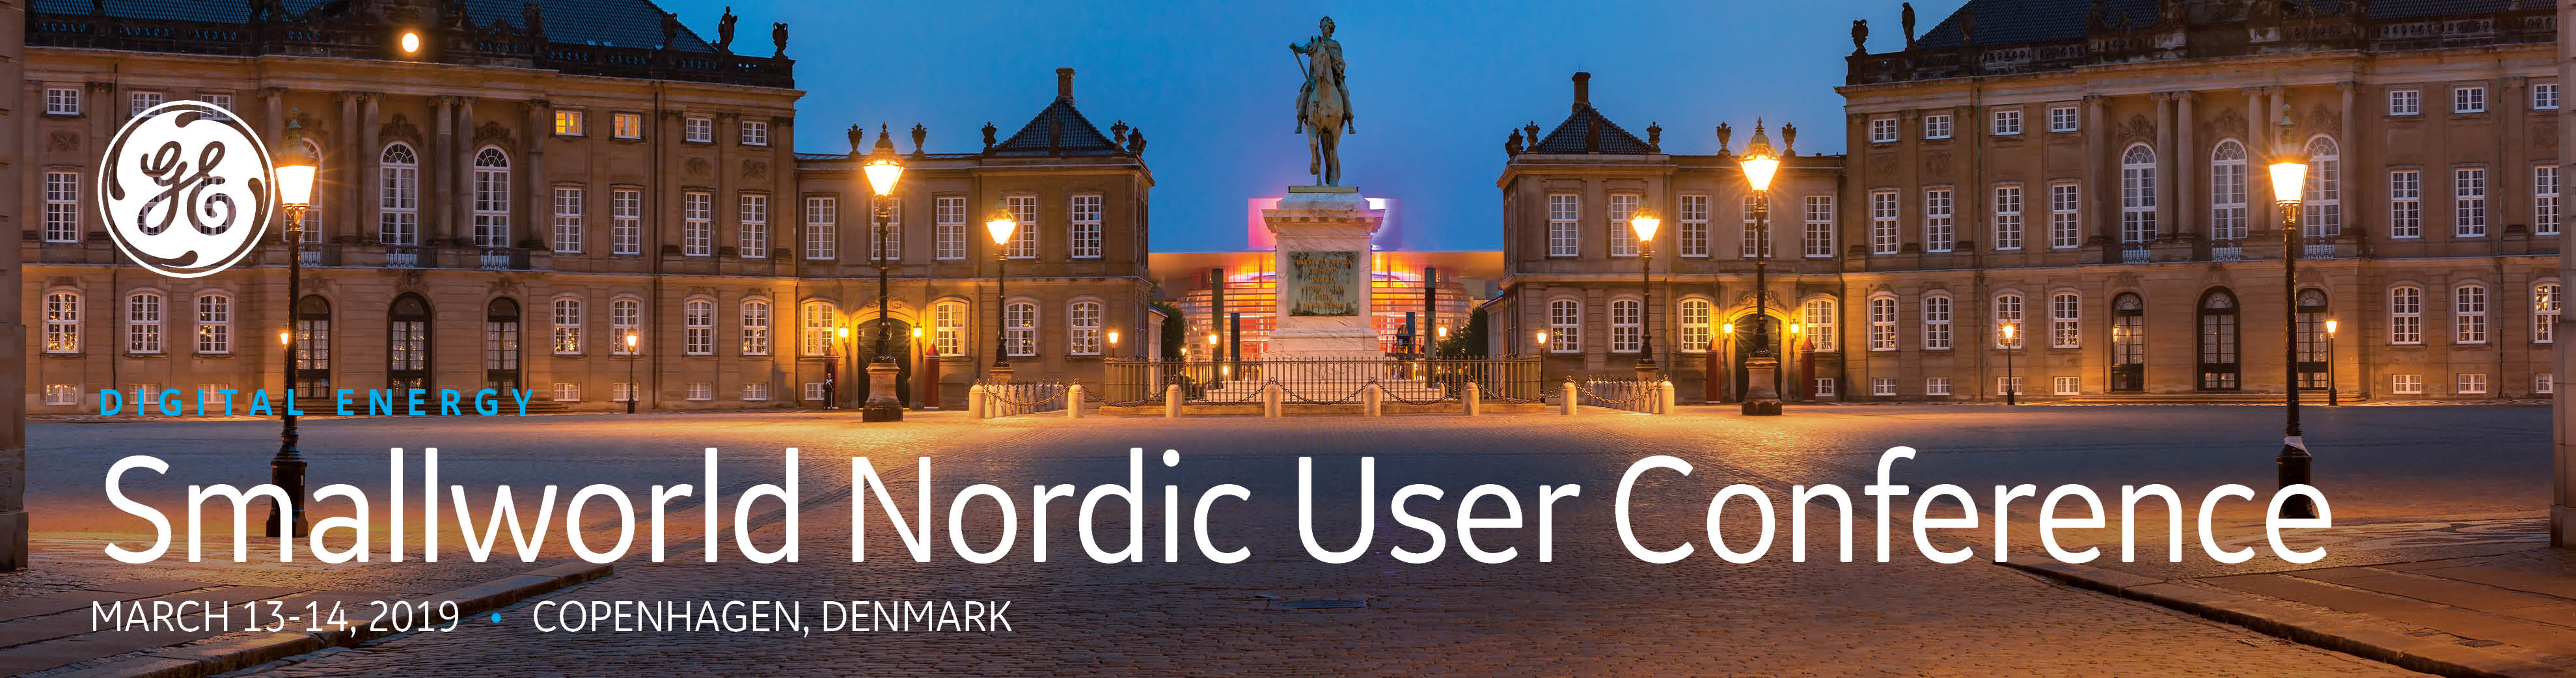 2019 Smallworld Nordic User Conference